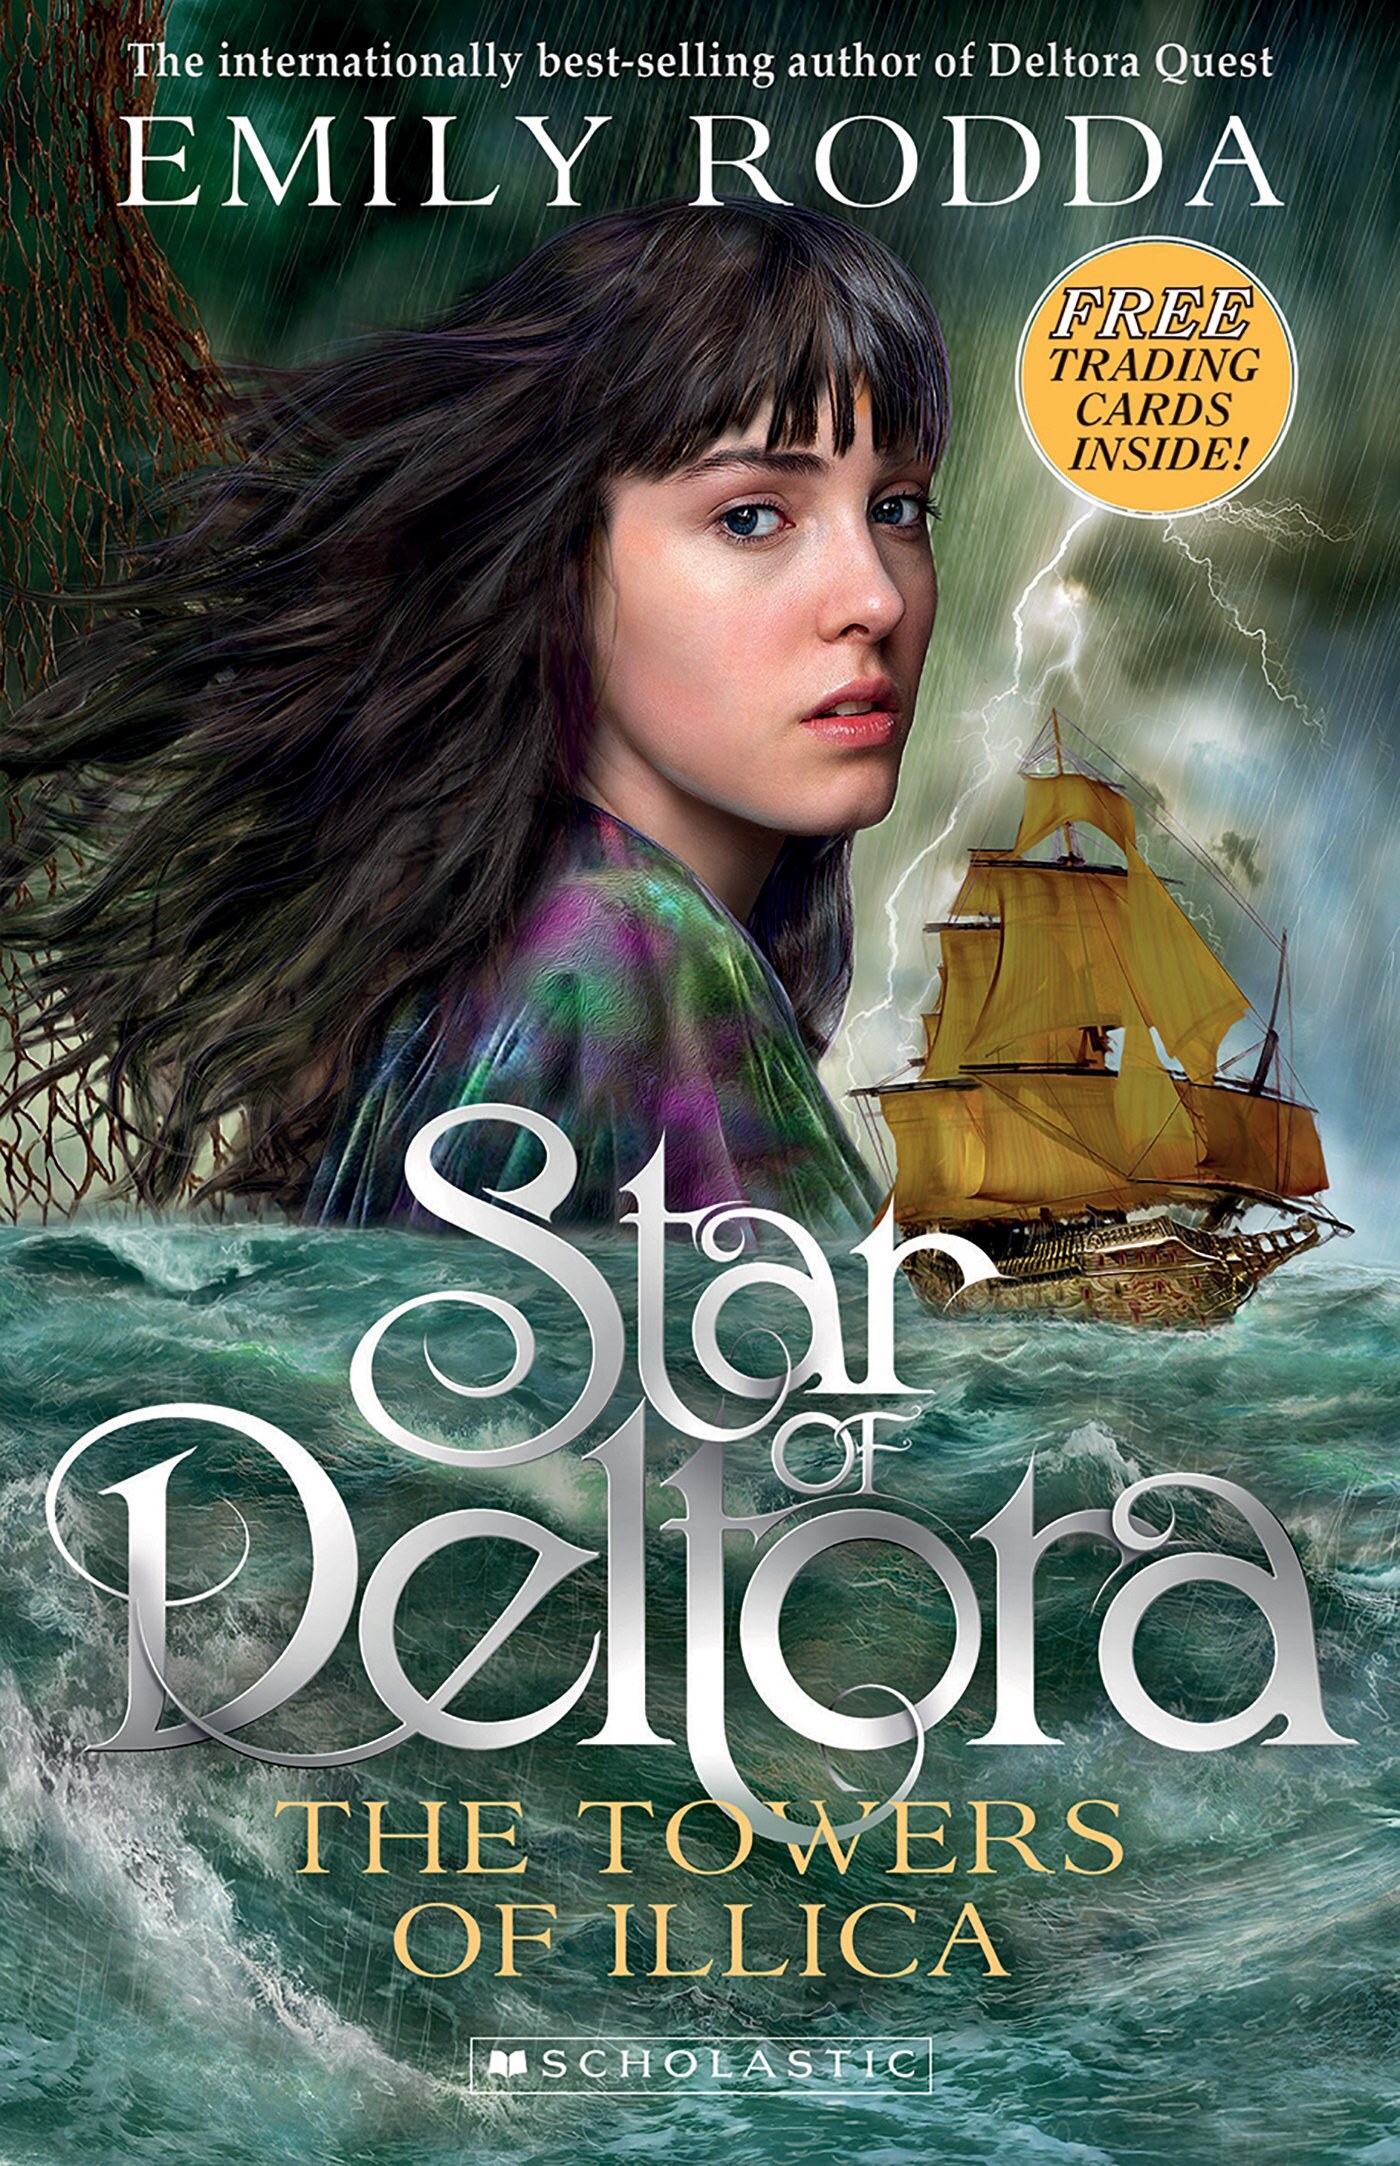 Book Cover Series Wiki : The towers of illica deltora quest wiki fandom powered